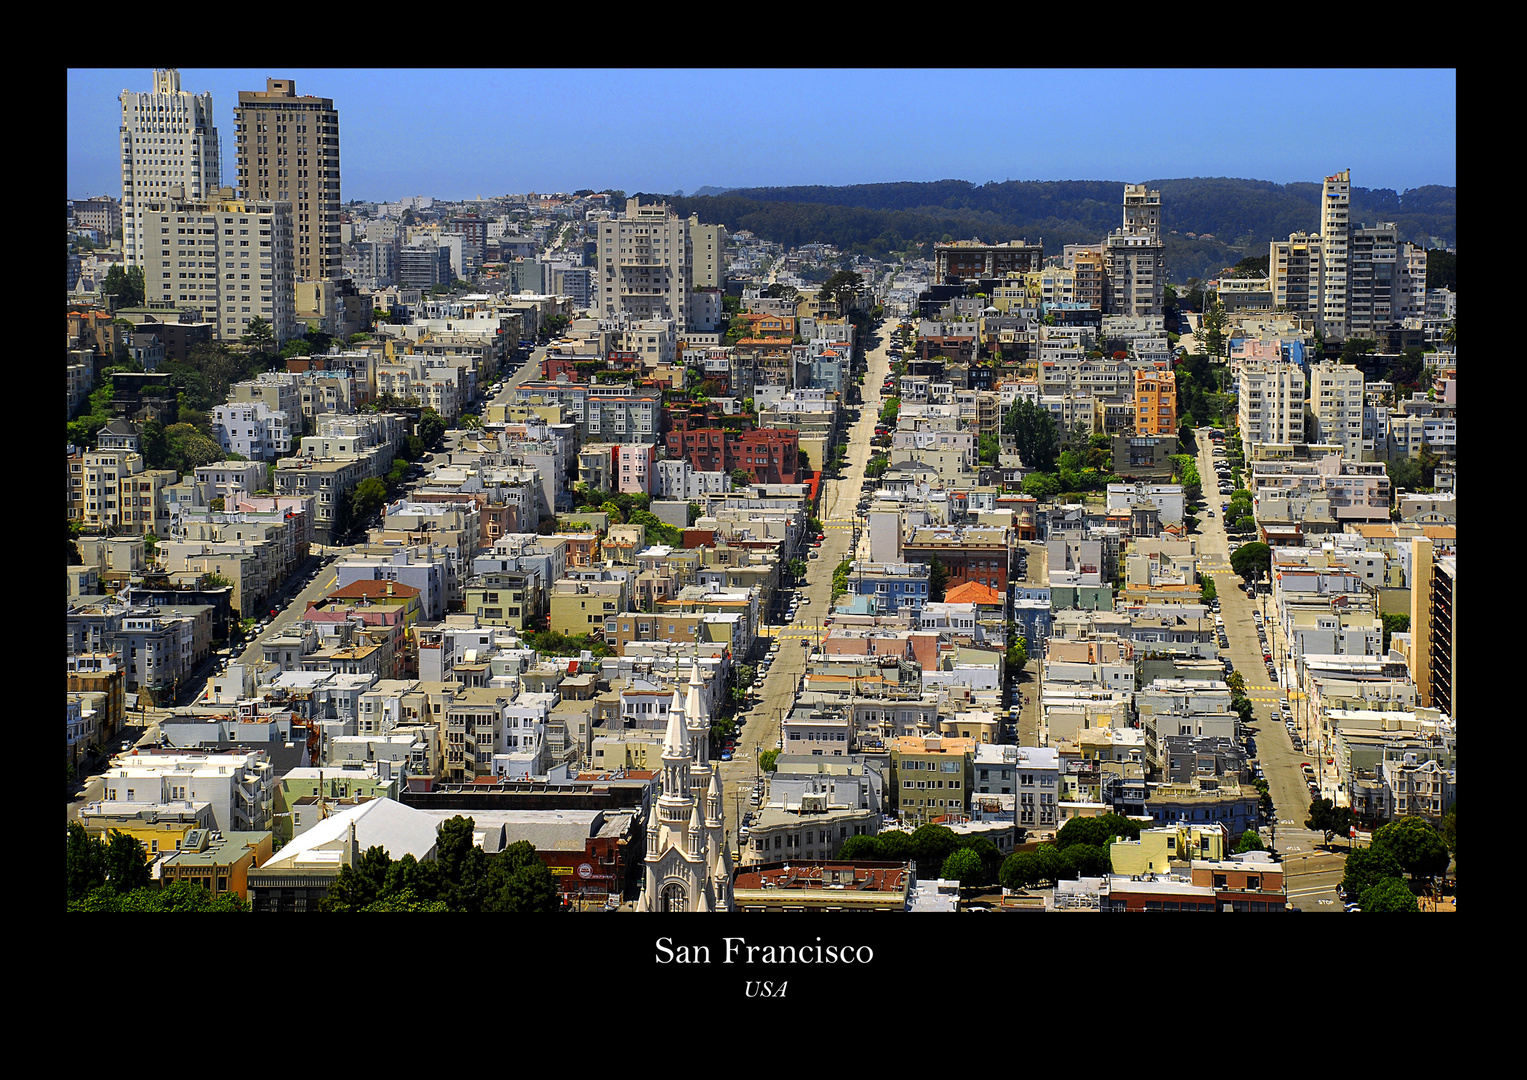 Let's go to....San Francisco